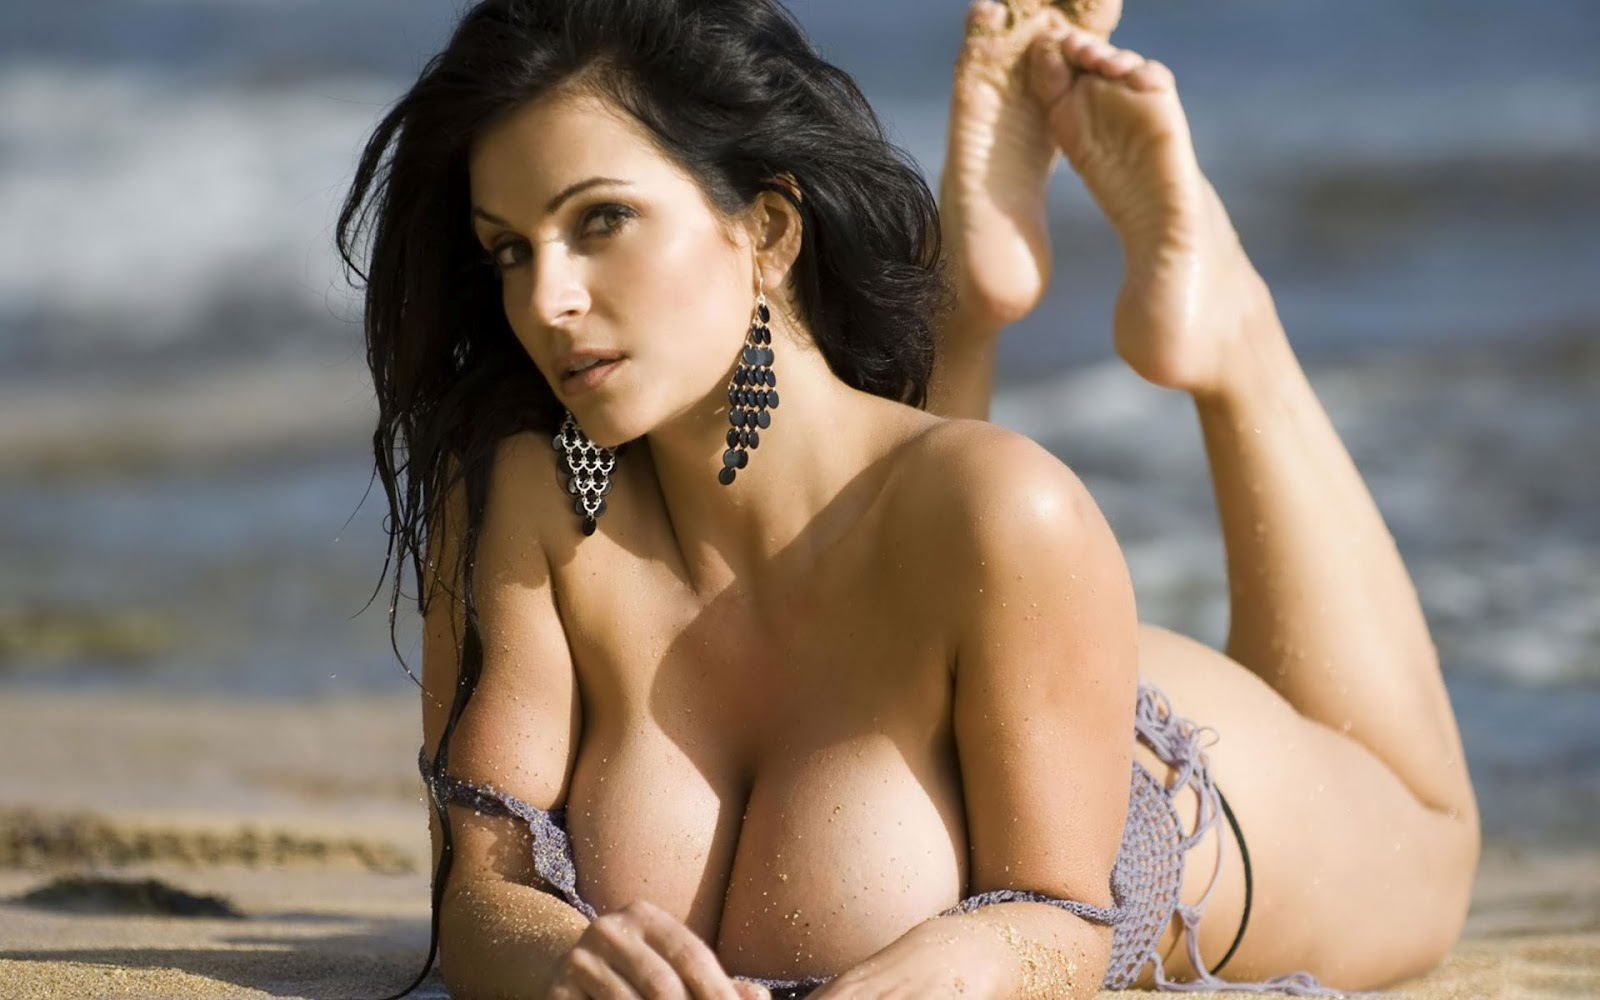 the big tits of denise milani spanish porn